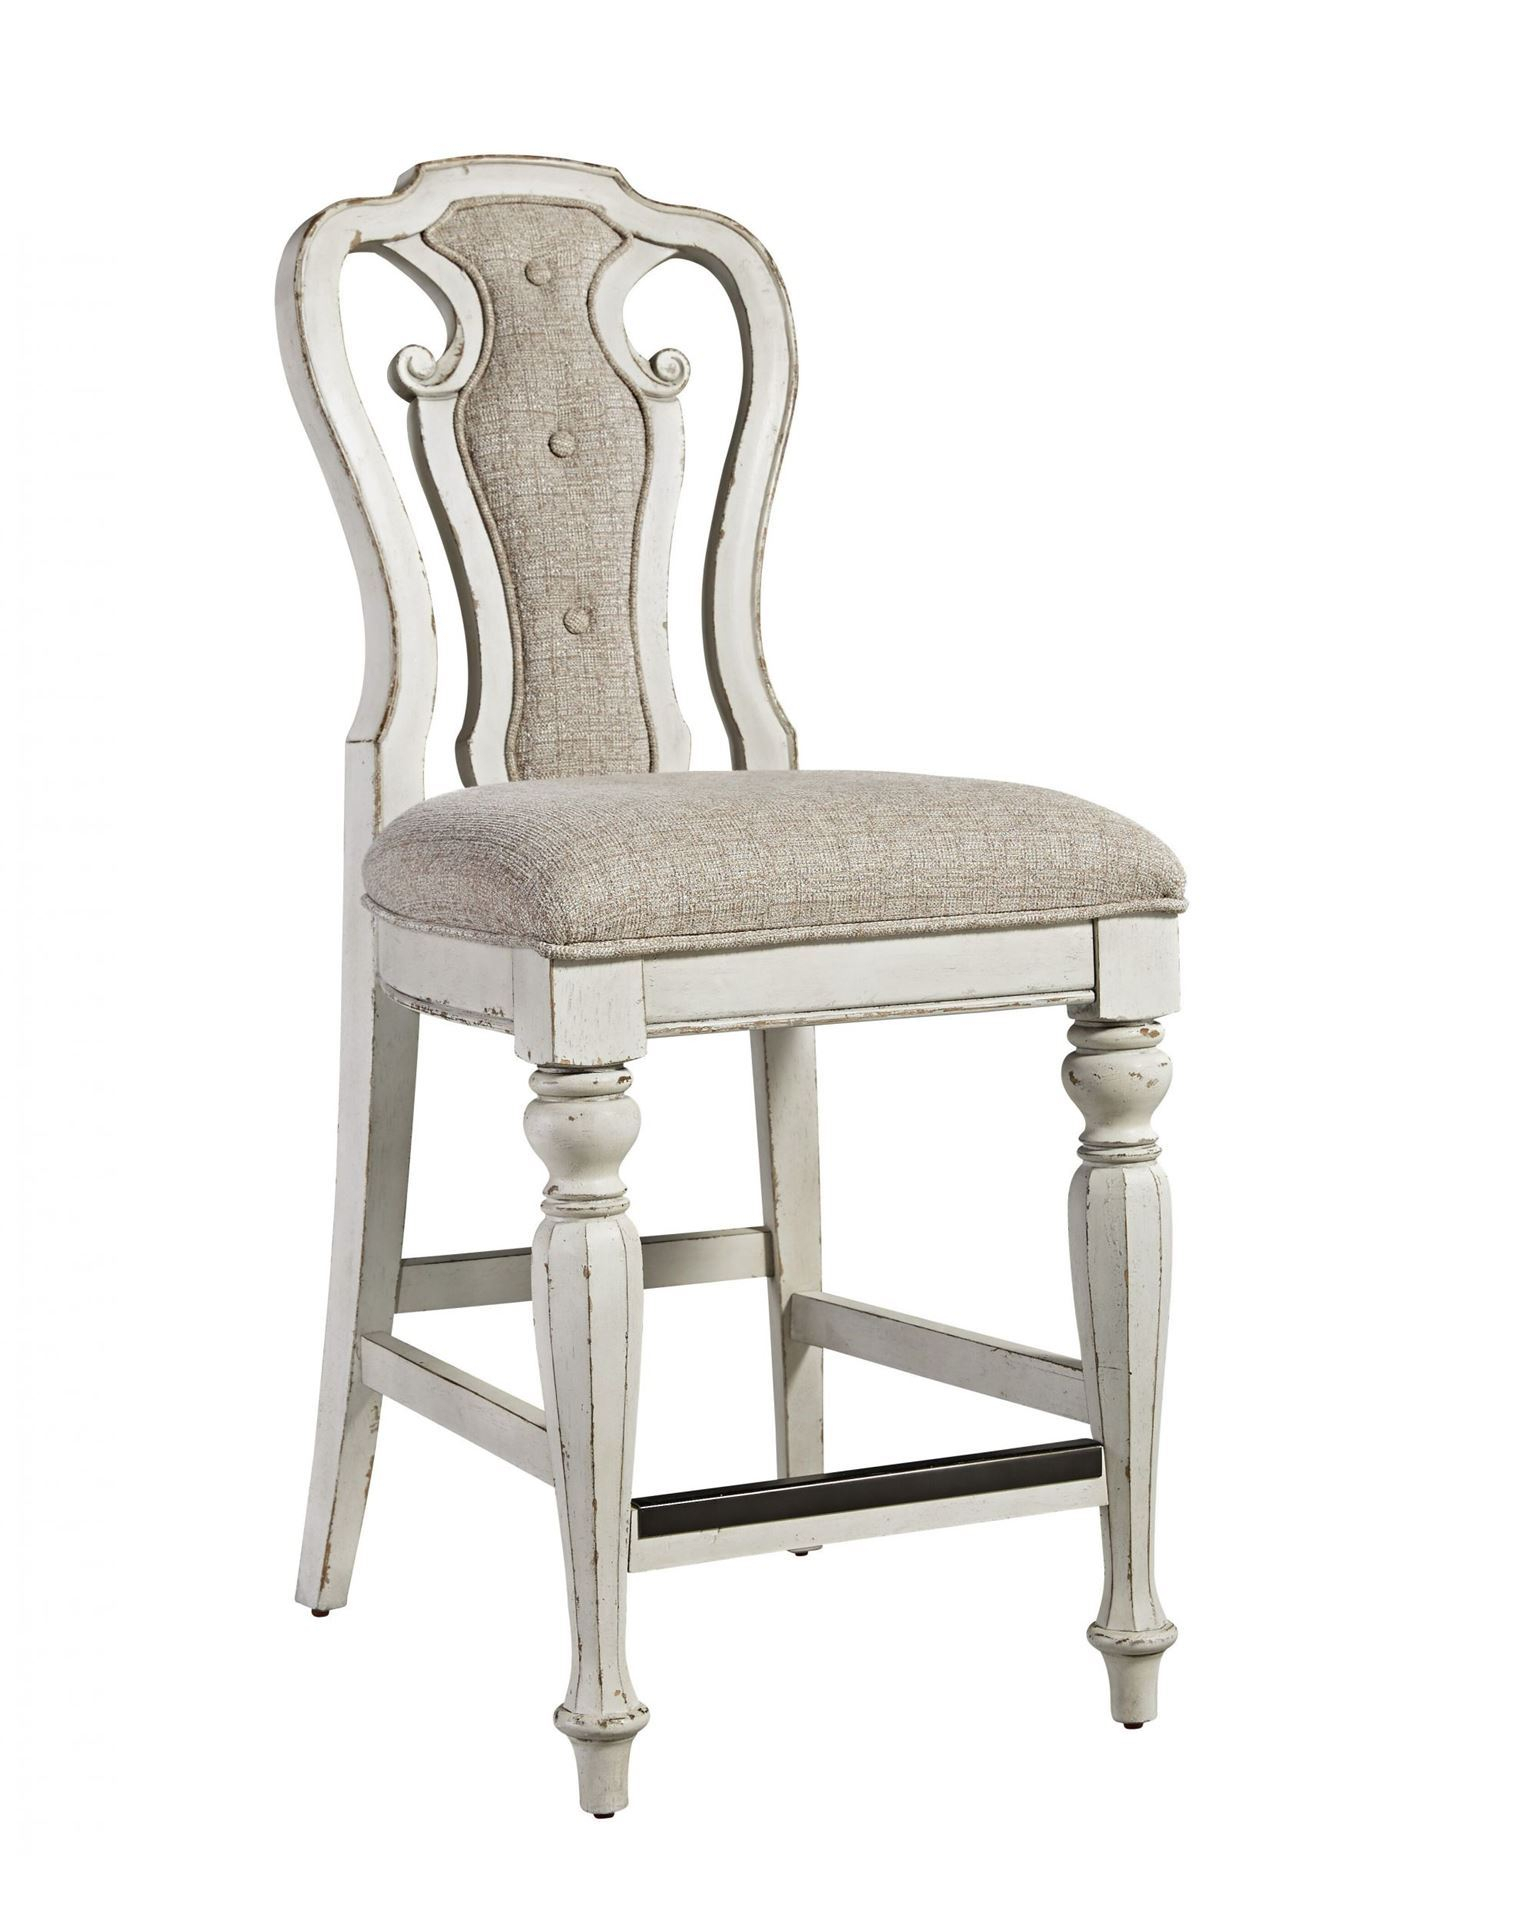 "Magnolia Manor 24"" Stool – Woodstock Furniture & Mattress With Regard To Manor Grey Swivel Chairs (Image 11 of 25)"